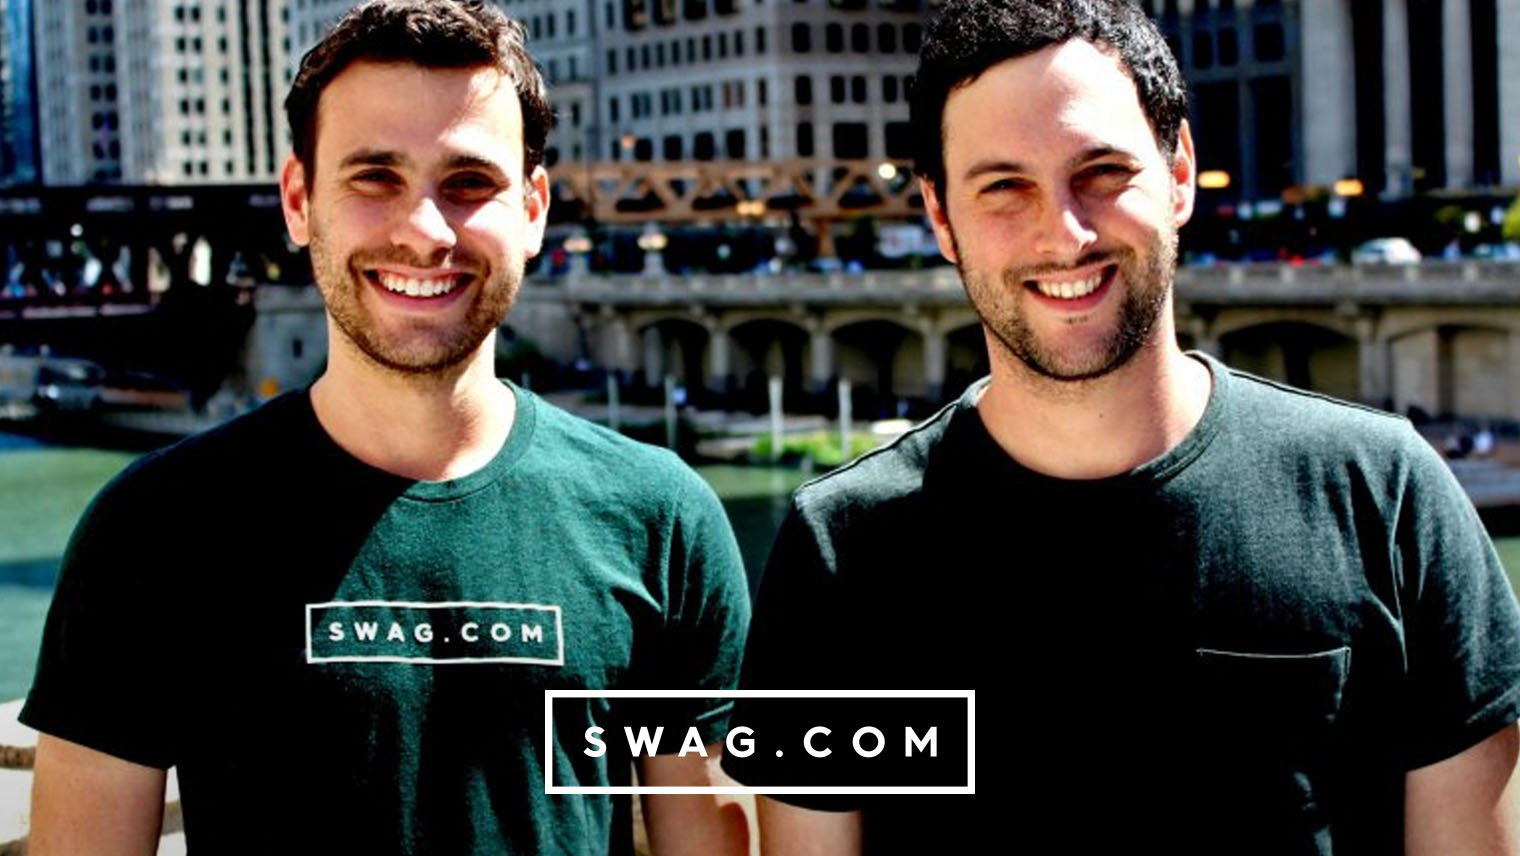 TechCrunch Looks at Promotional Facebook & WeWork Items With Swag.com